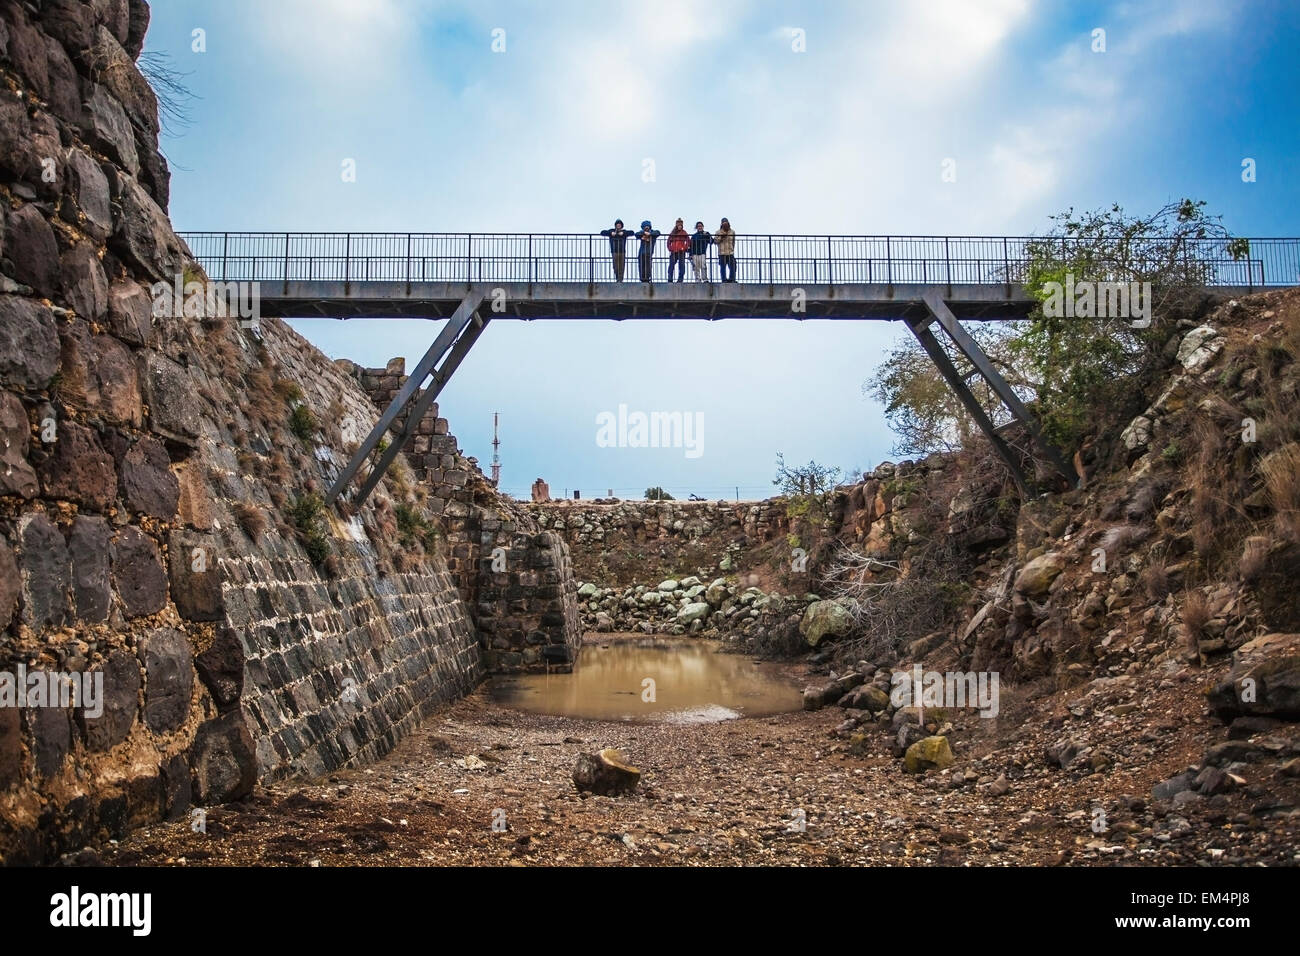 People Standing On A Bridge Over A Moat In Kokhav Ha Yarden National Park; Israel Stock Photo